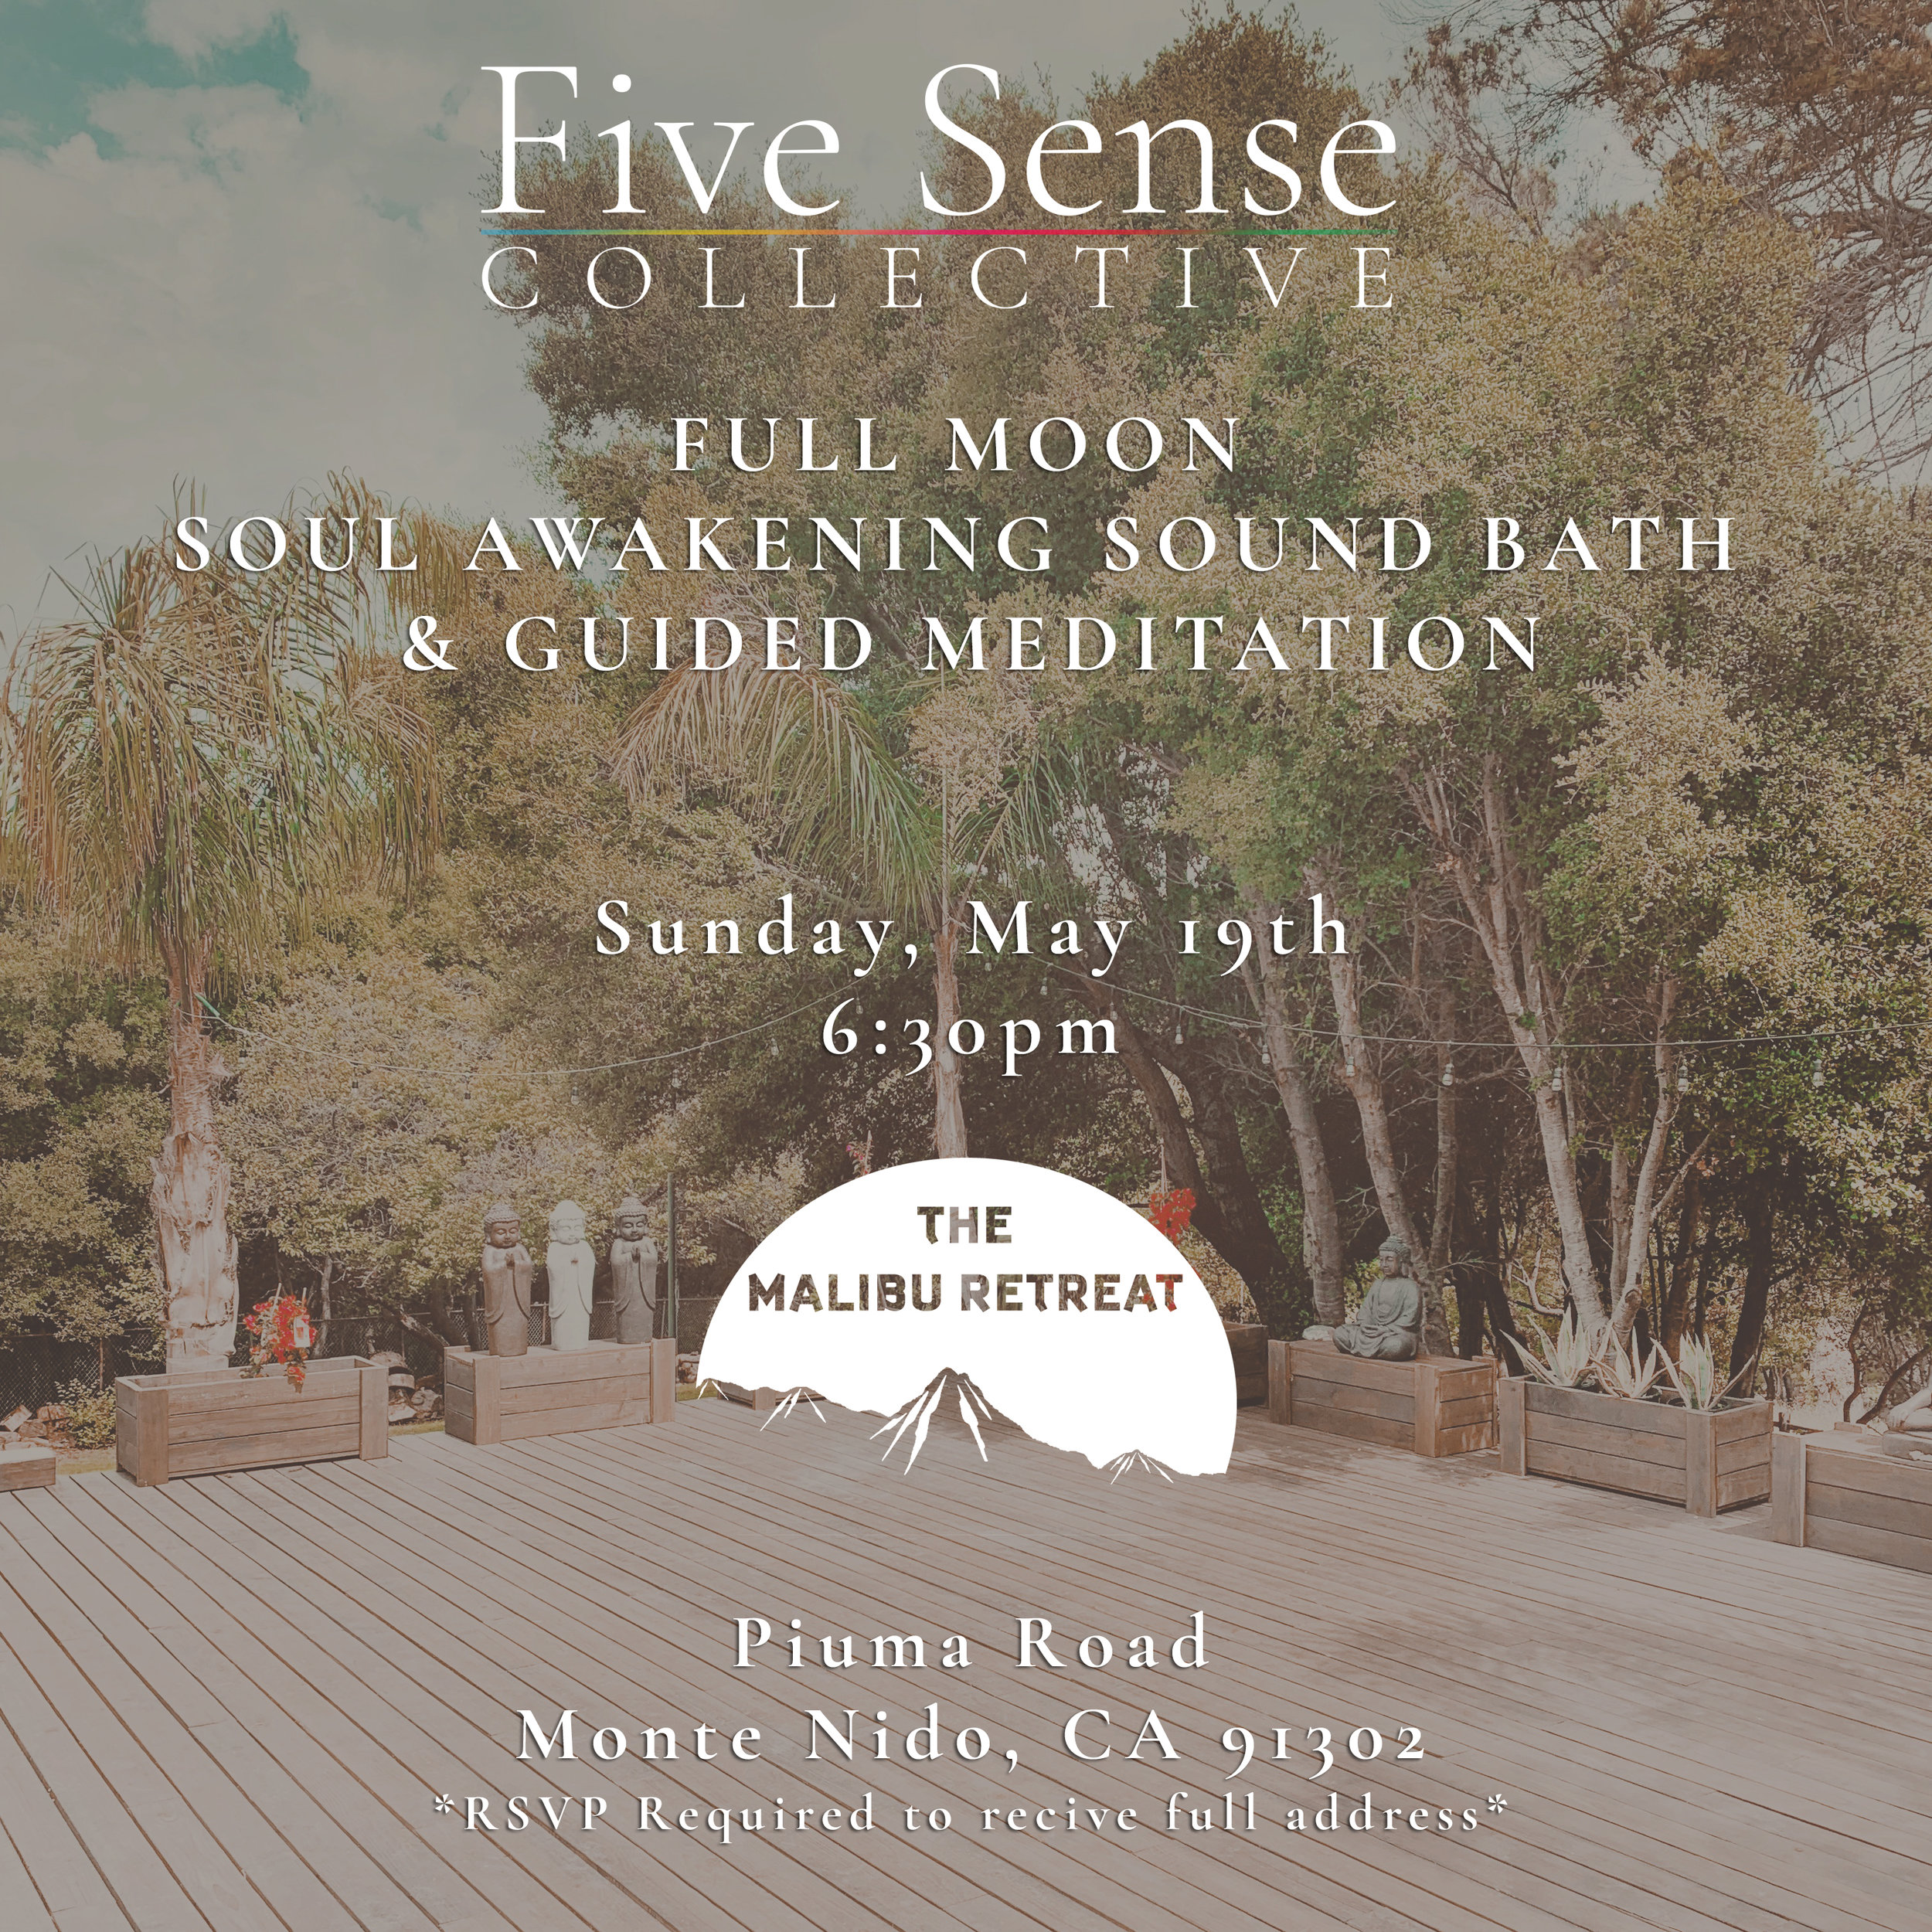 the malibu retreat monte nido + five sense collective + may + sound bath.jpg